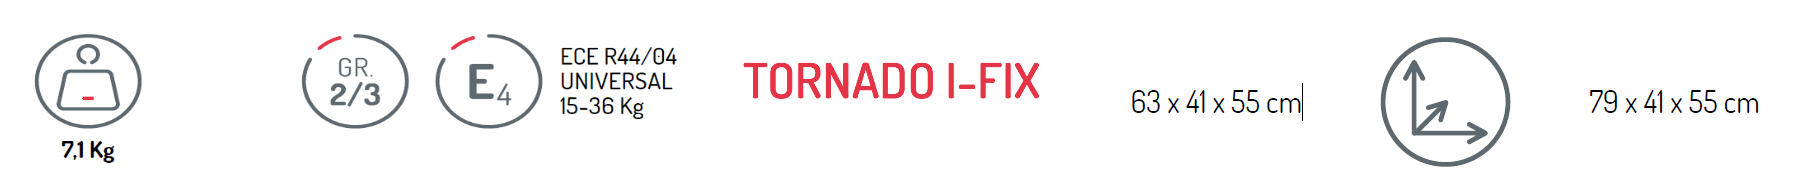 TORNADO I-FIX BE COOL TECNICO